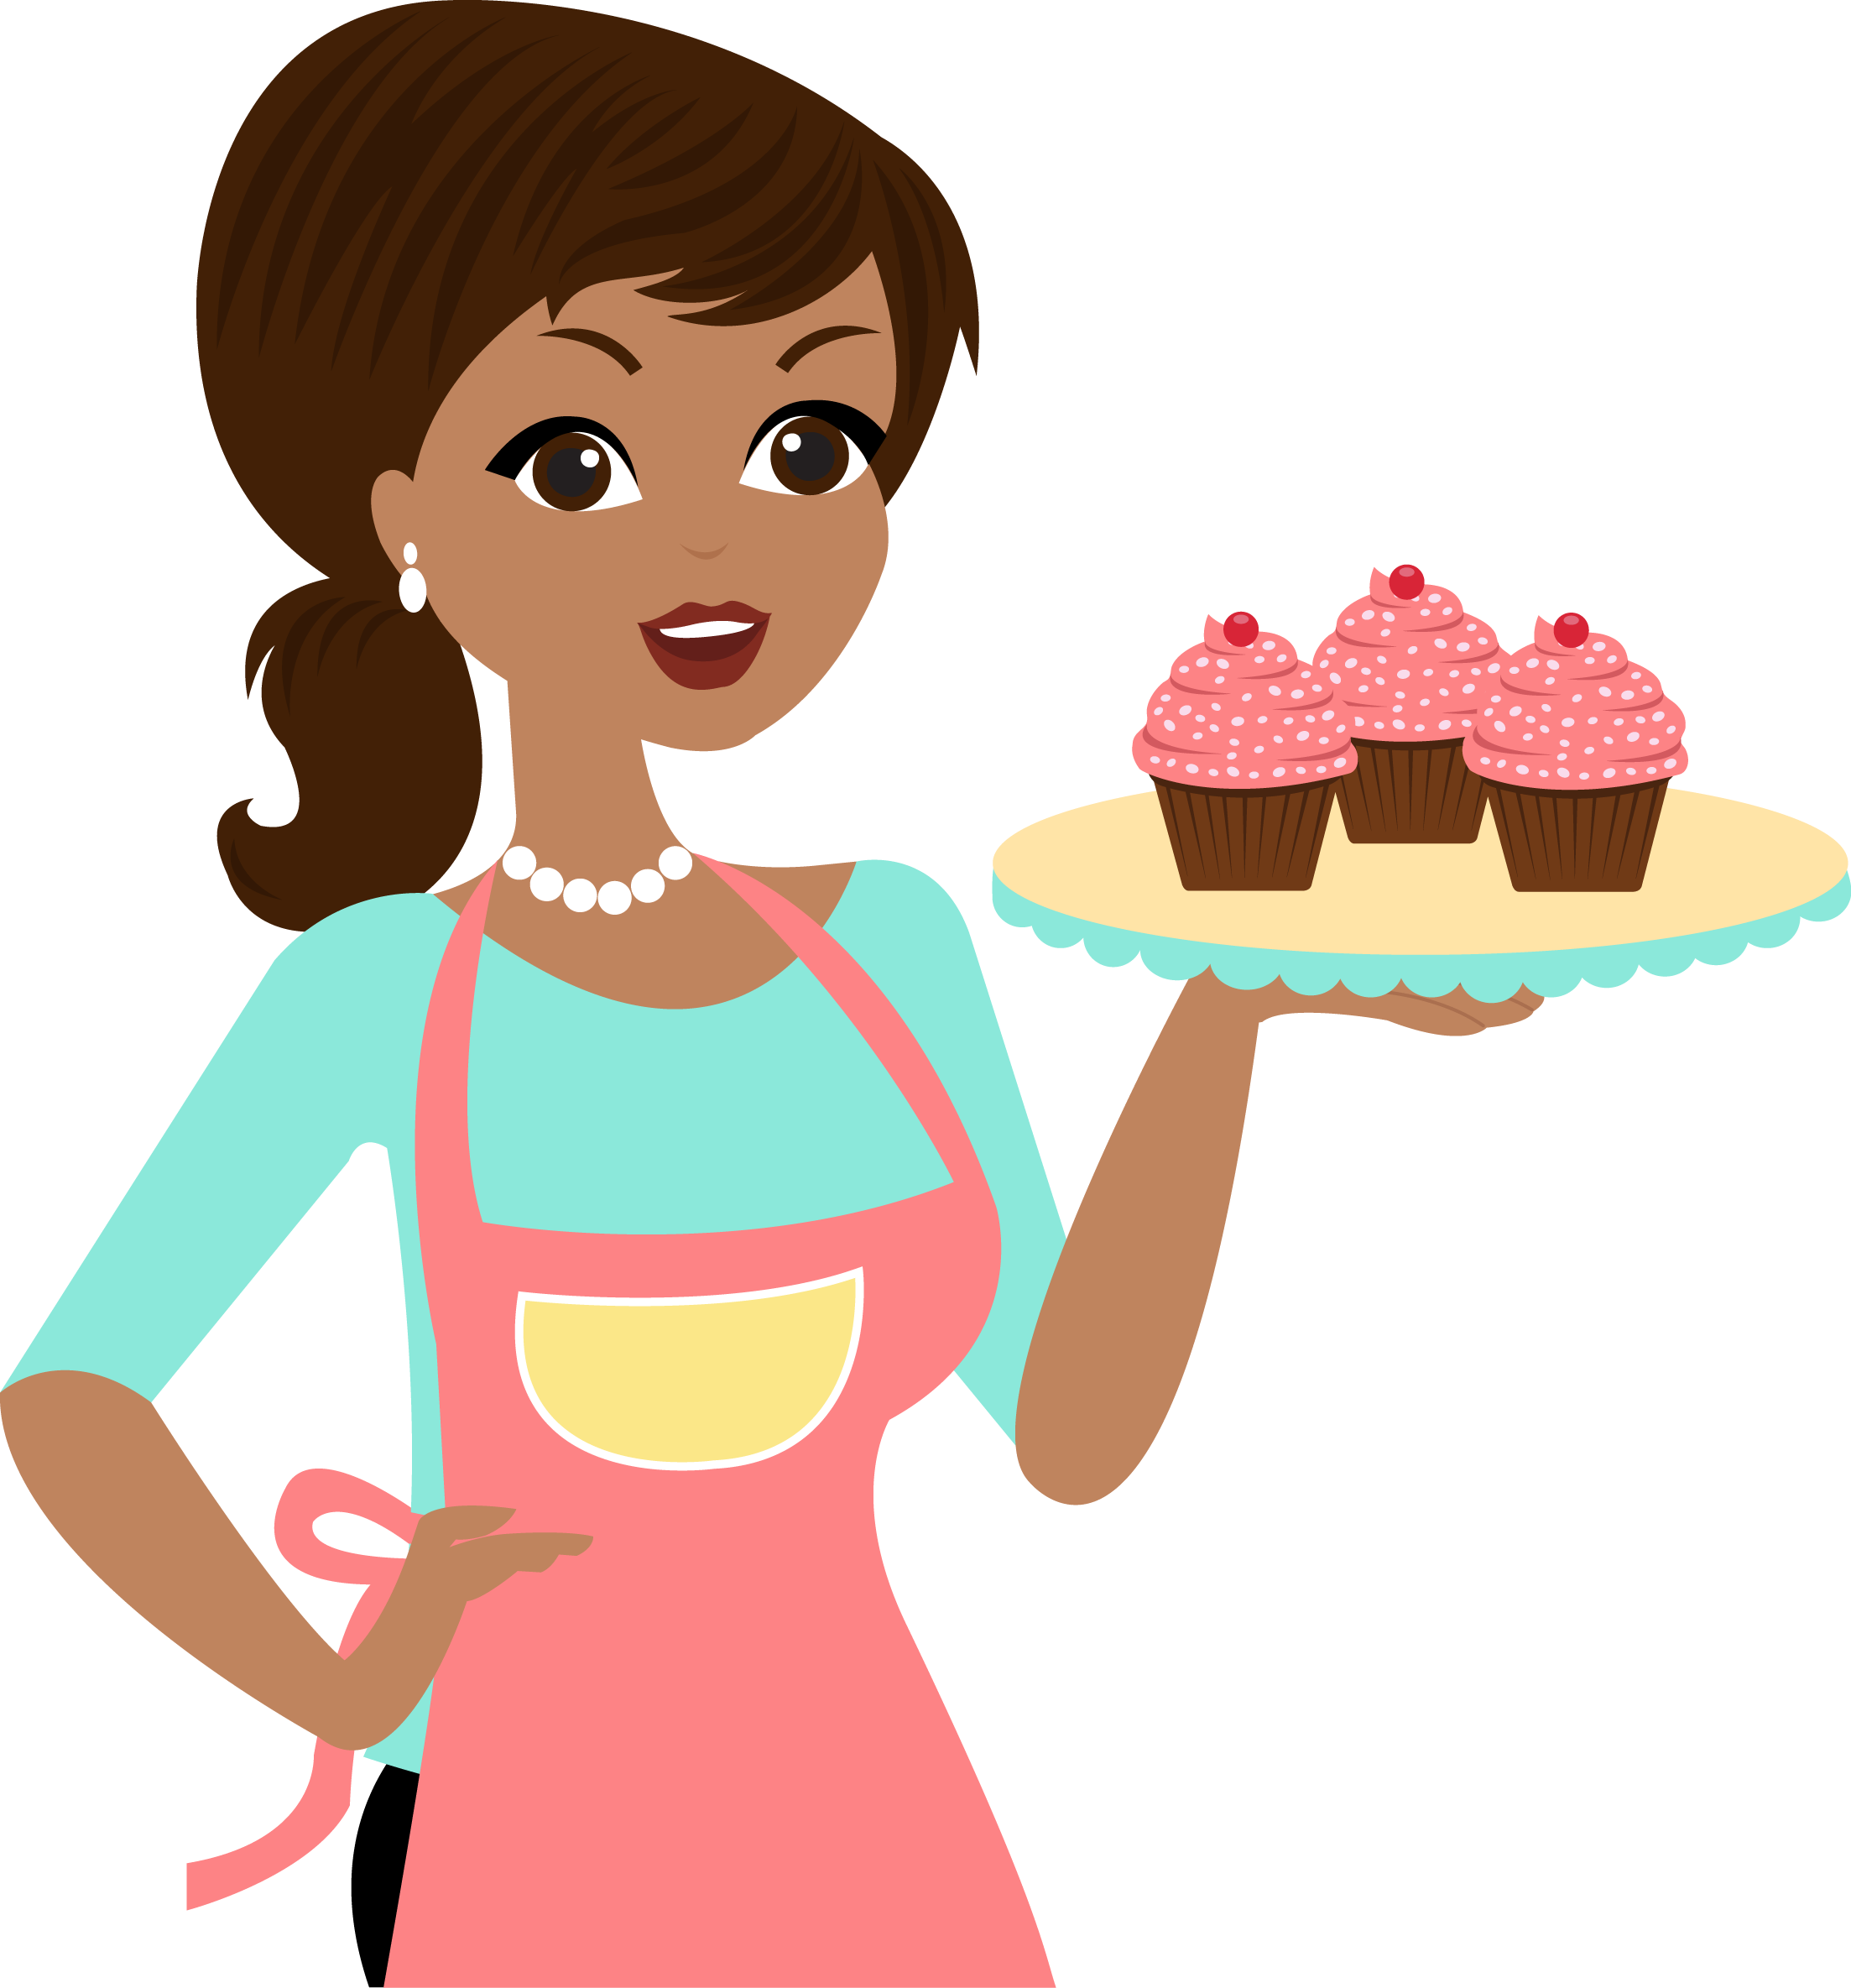 Png images of blonde blowing out birthday candles. Ponque pinterest apron